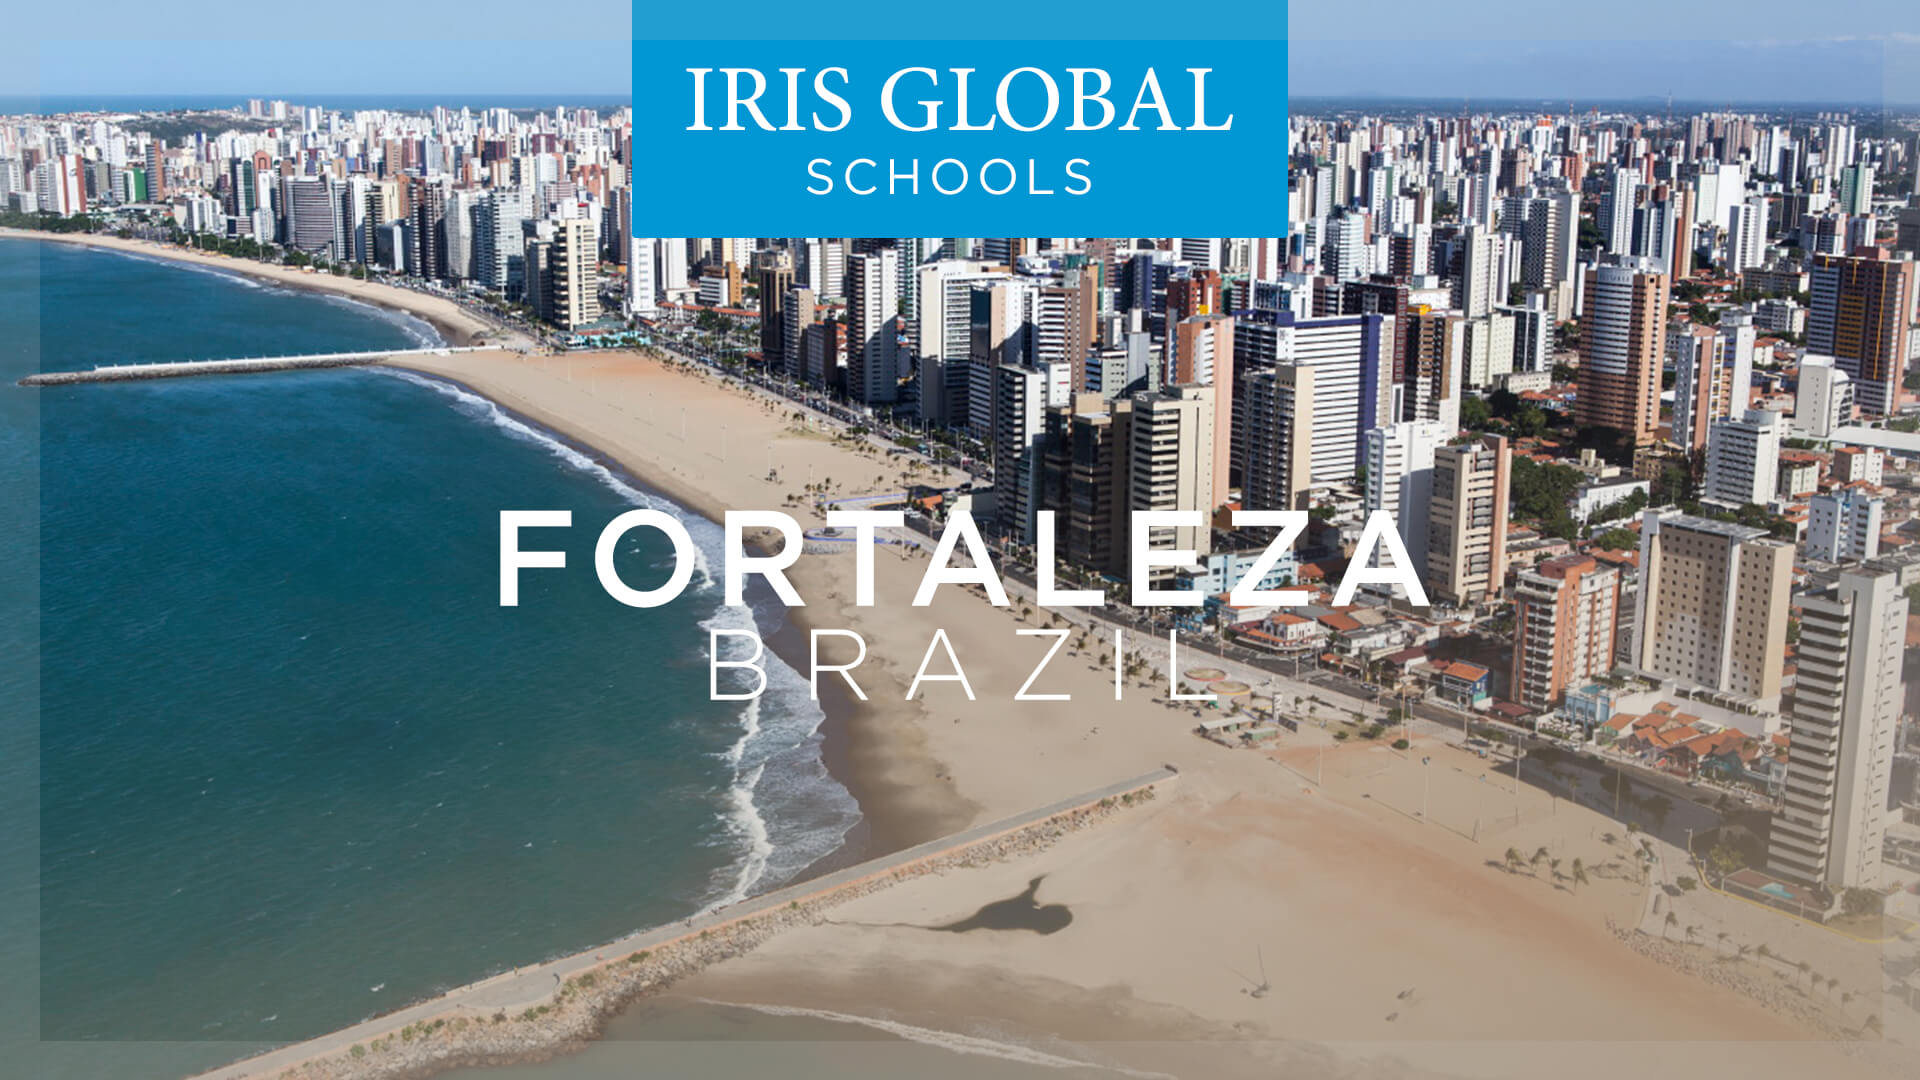 Iris Global School Fortaleza, Brazil